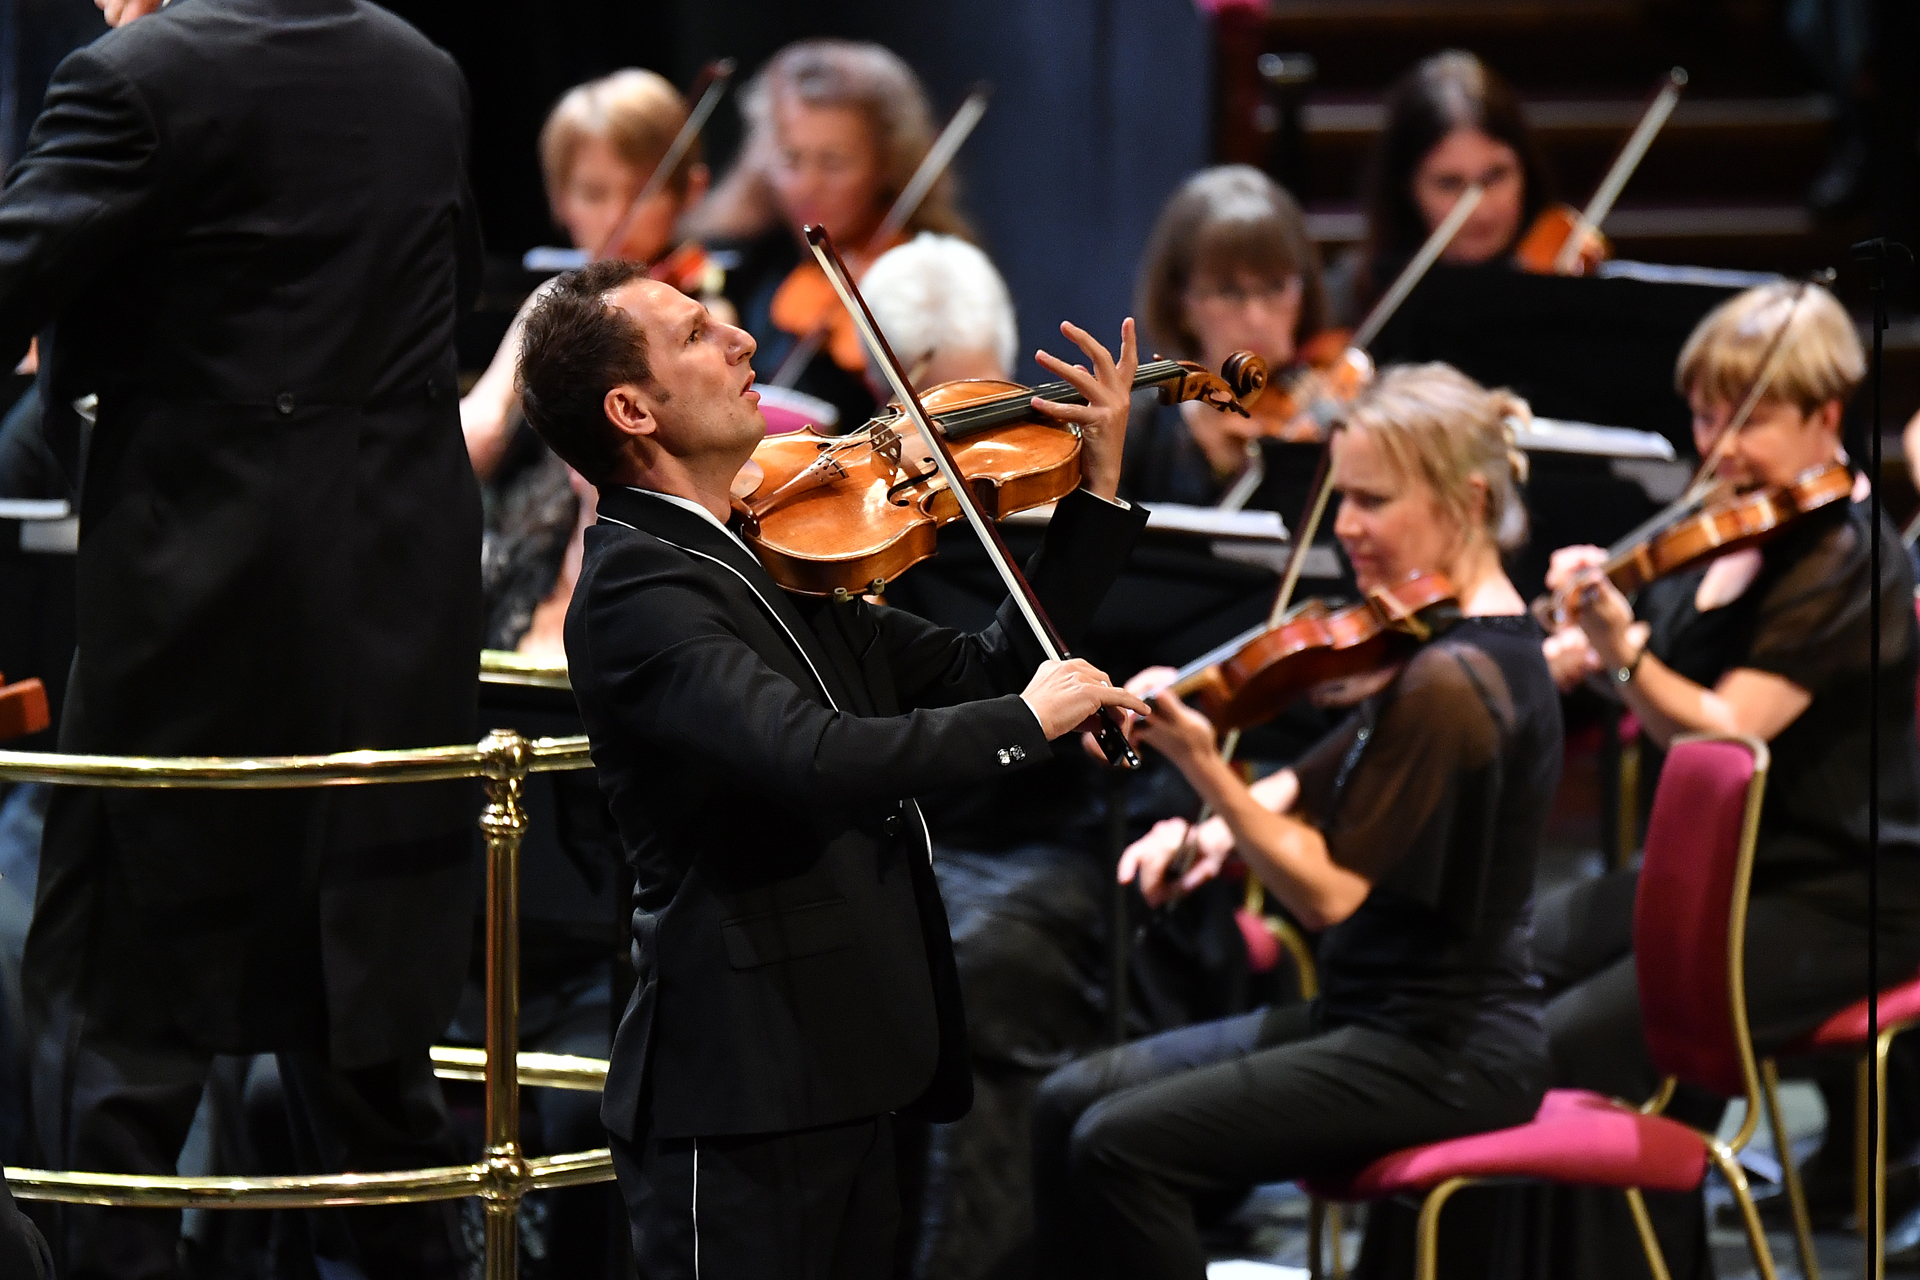 Antoine Tamestit at the Proms